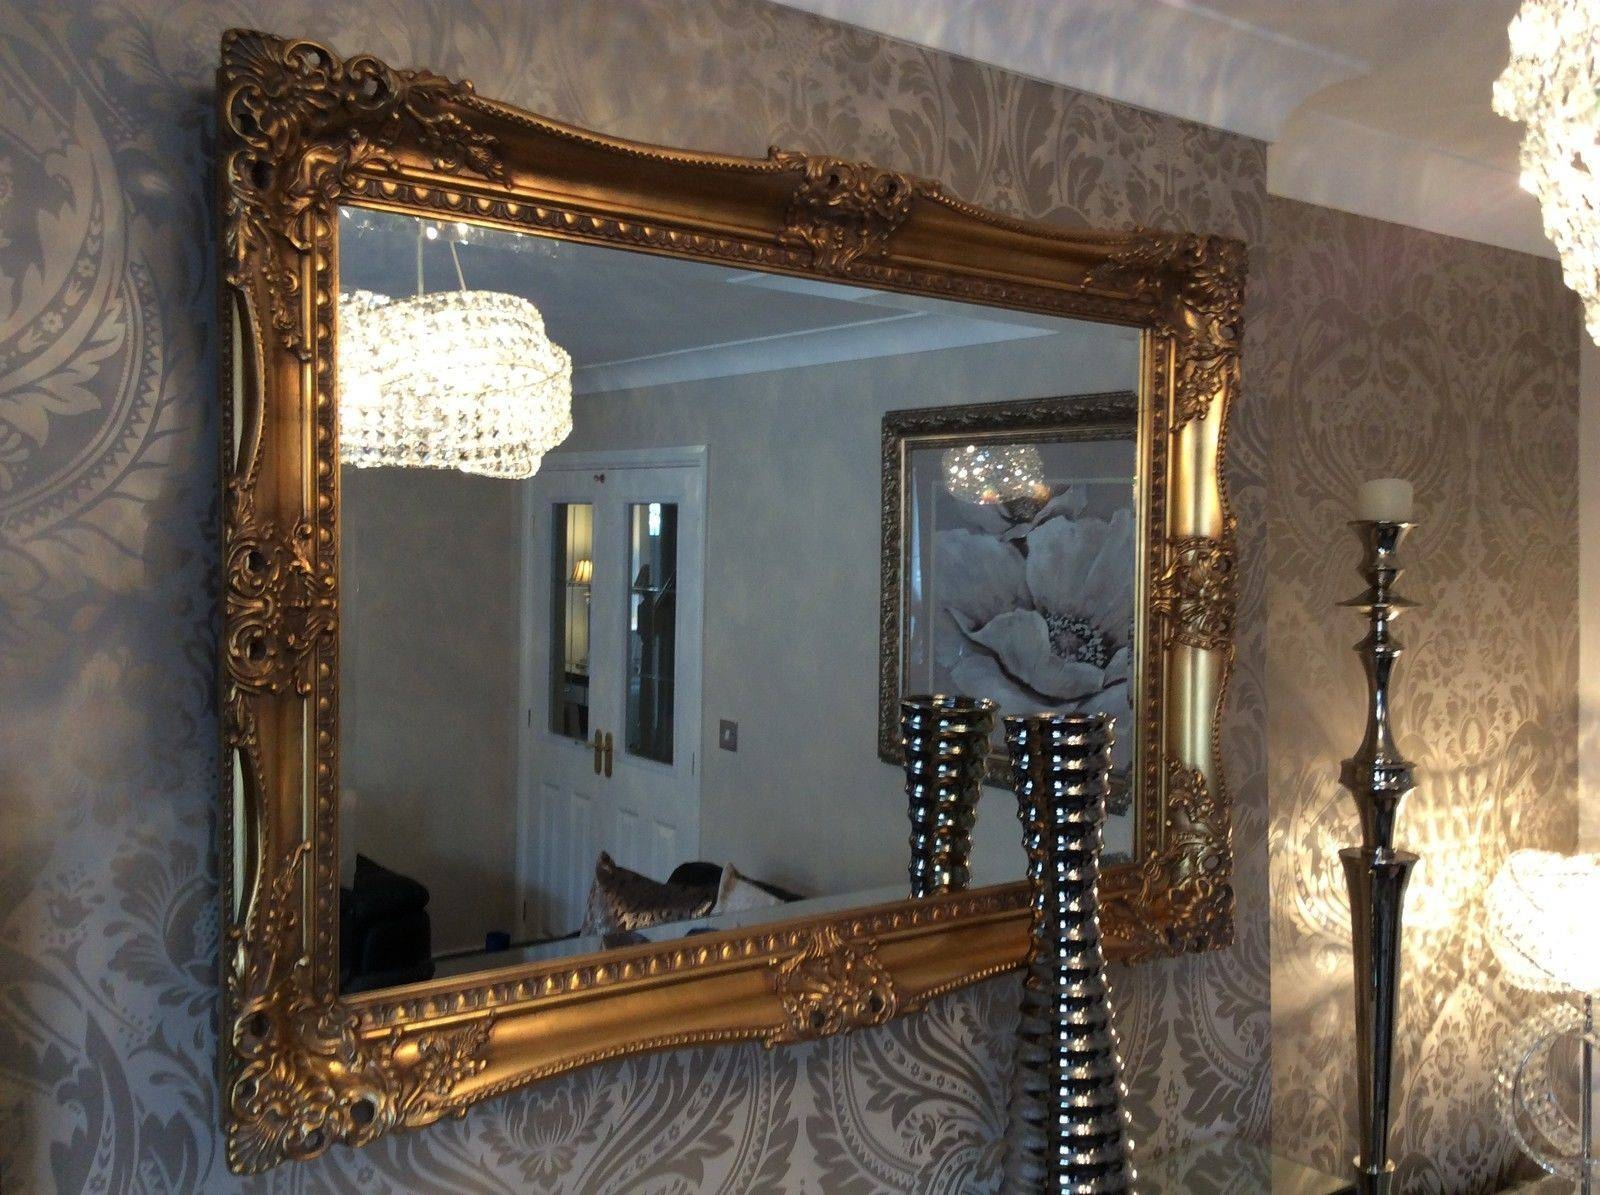 Large Bright Metallic Silver Ornate Decorative Wall Mirror Free With Large Ornate Wall Mirrors (View 10 of 15)